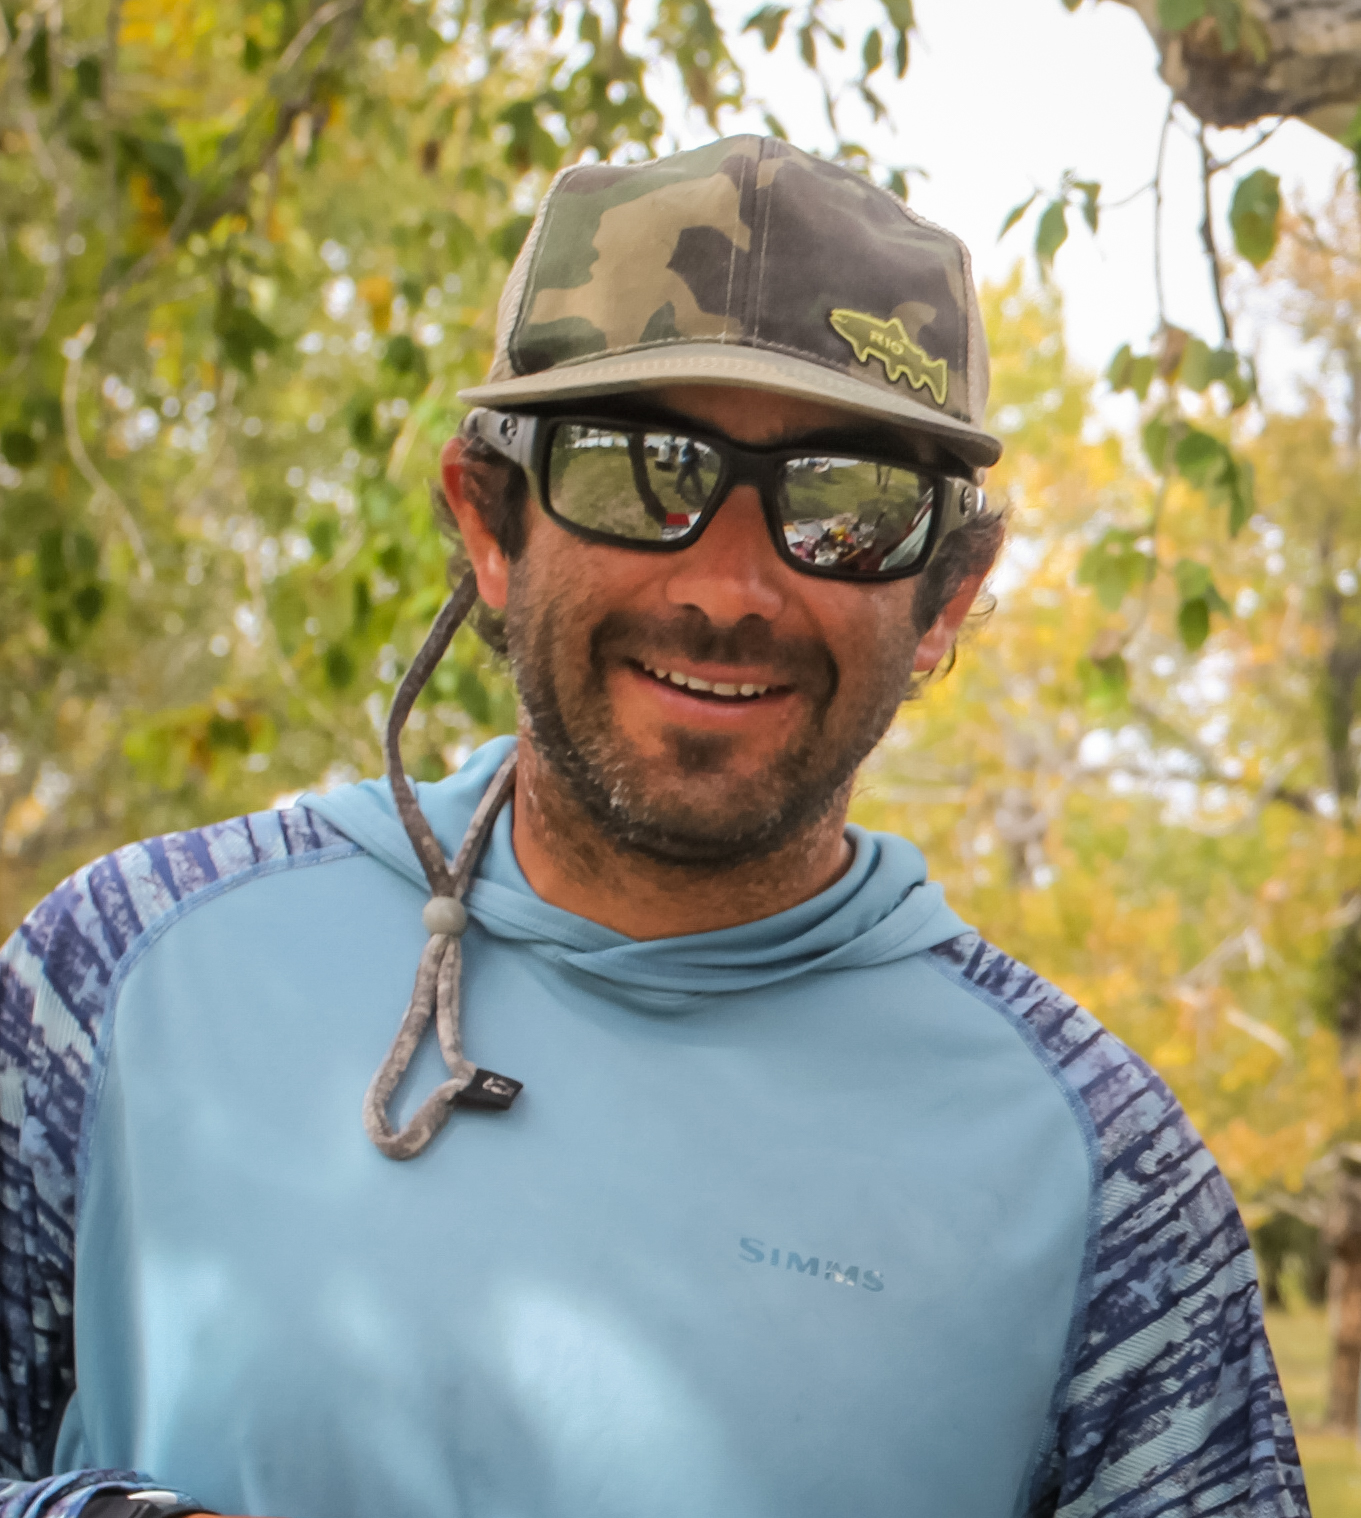 You can always count on a smile from Chino! Andres is as happy on the rivers of Mongolia as he is back home in Chile where he owns and operates Koon Outfitter's. Chino brings a wealth of knowledge, experience and enthusiasm to the team with nearly 15 years of professional guiding experience.